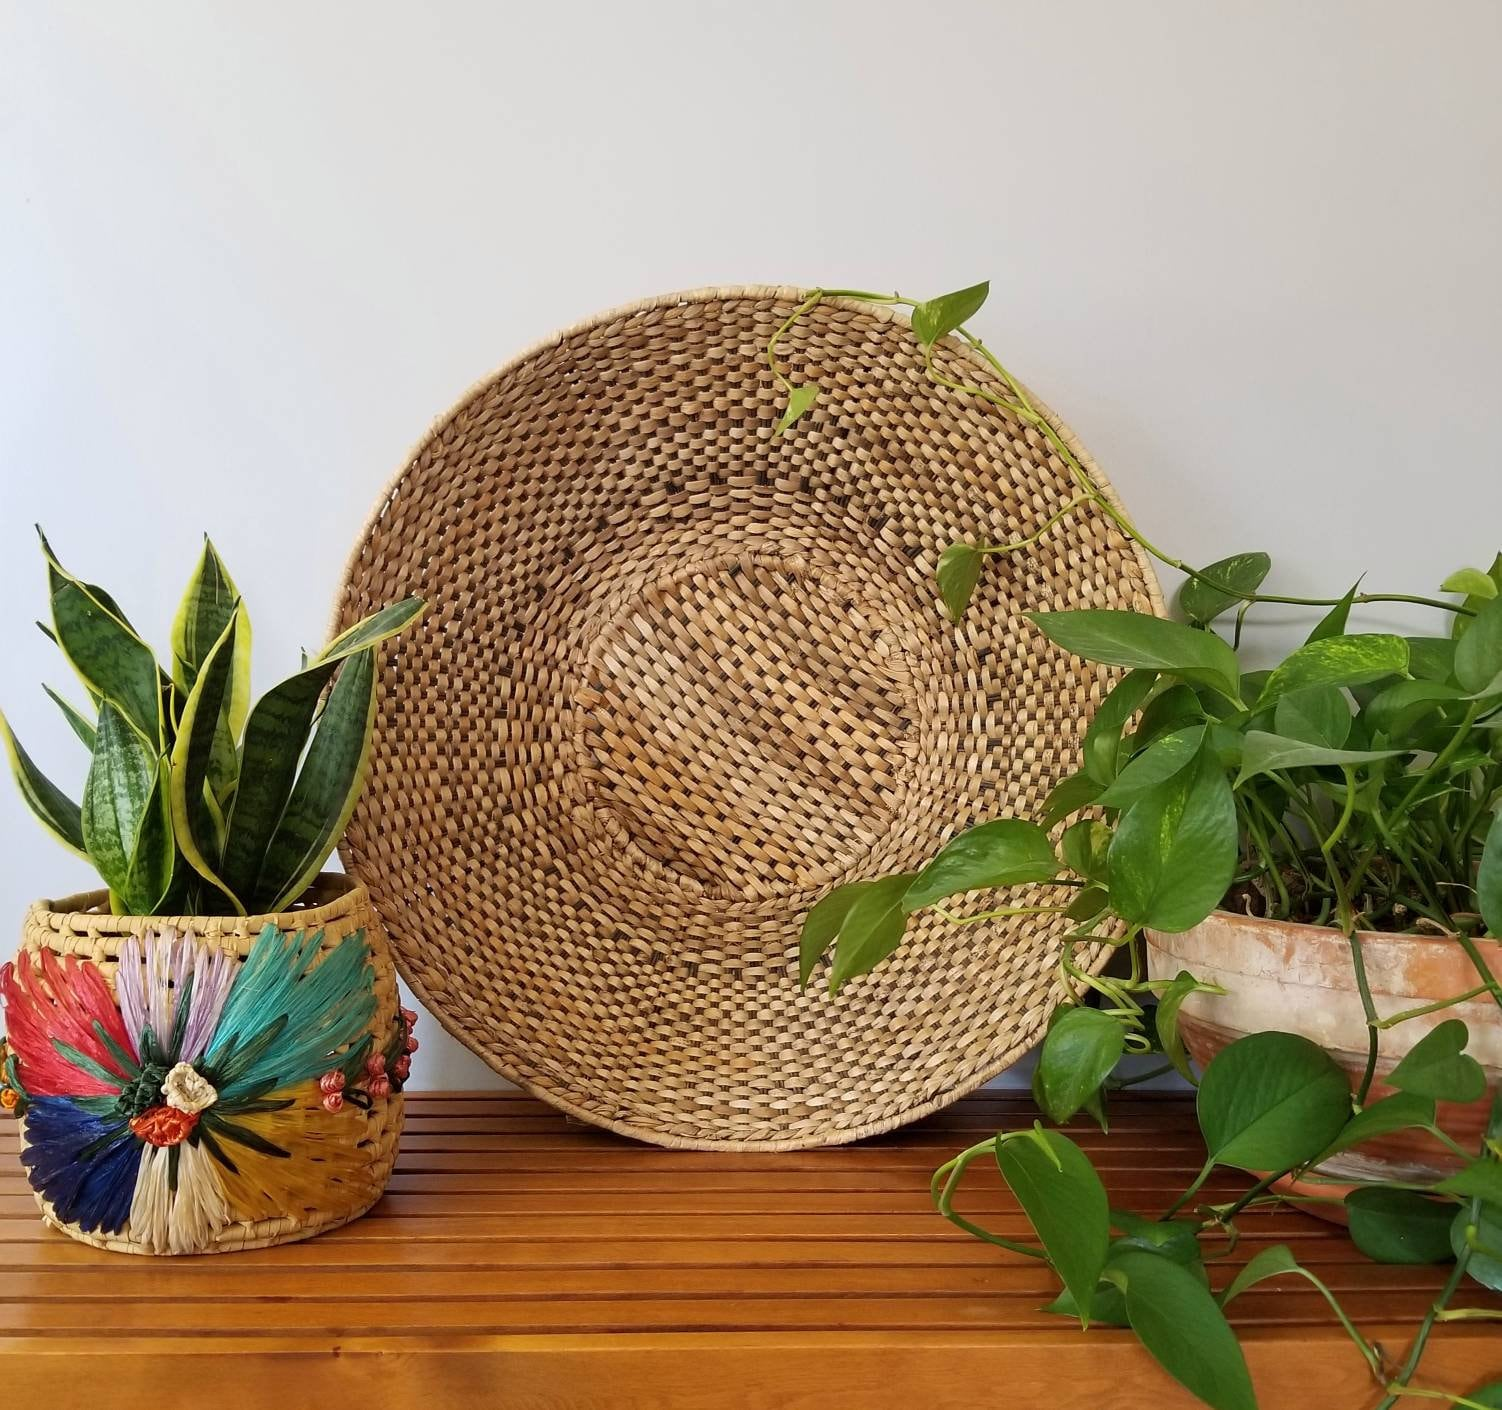 white  basket painted wicker basket 1 large ungo basket Bowl  Woven Bowl  African baskets Wall basket  bohemian home  Home Decor